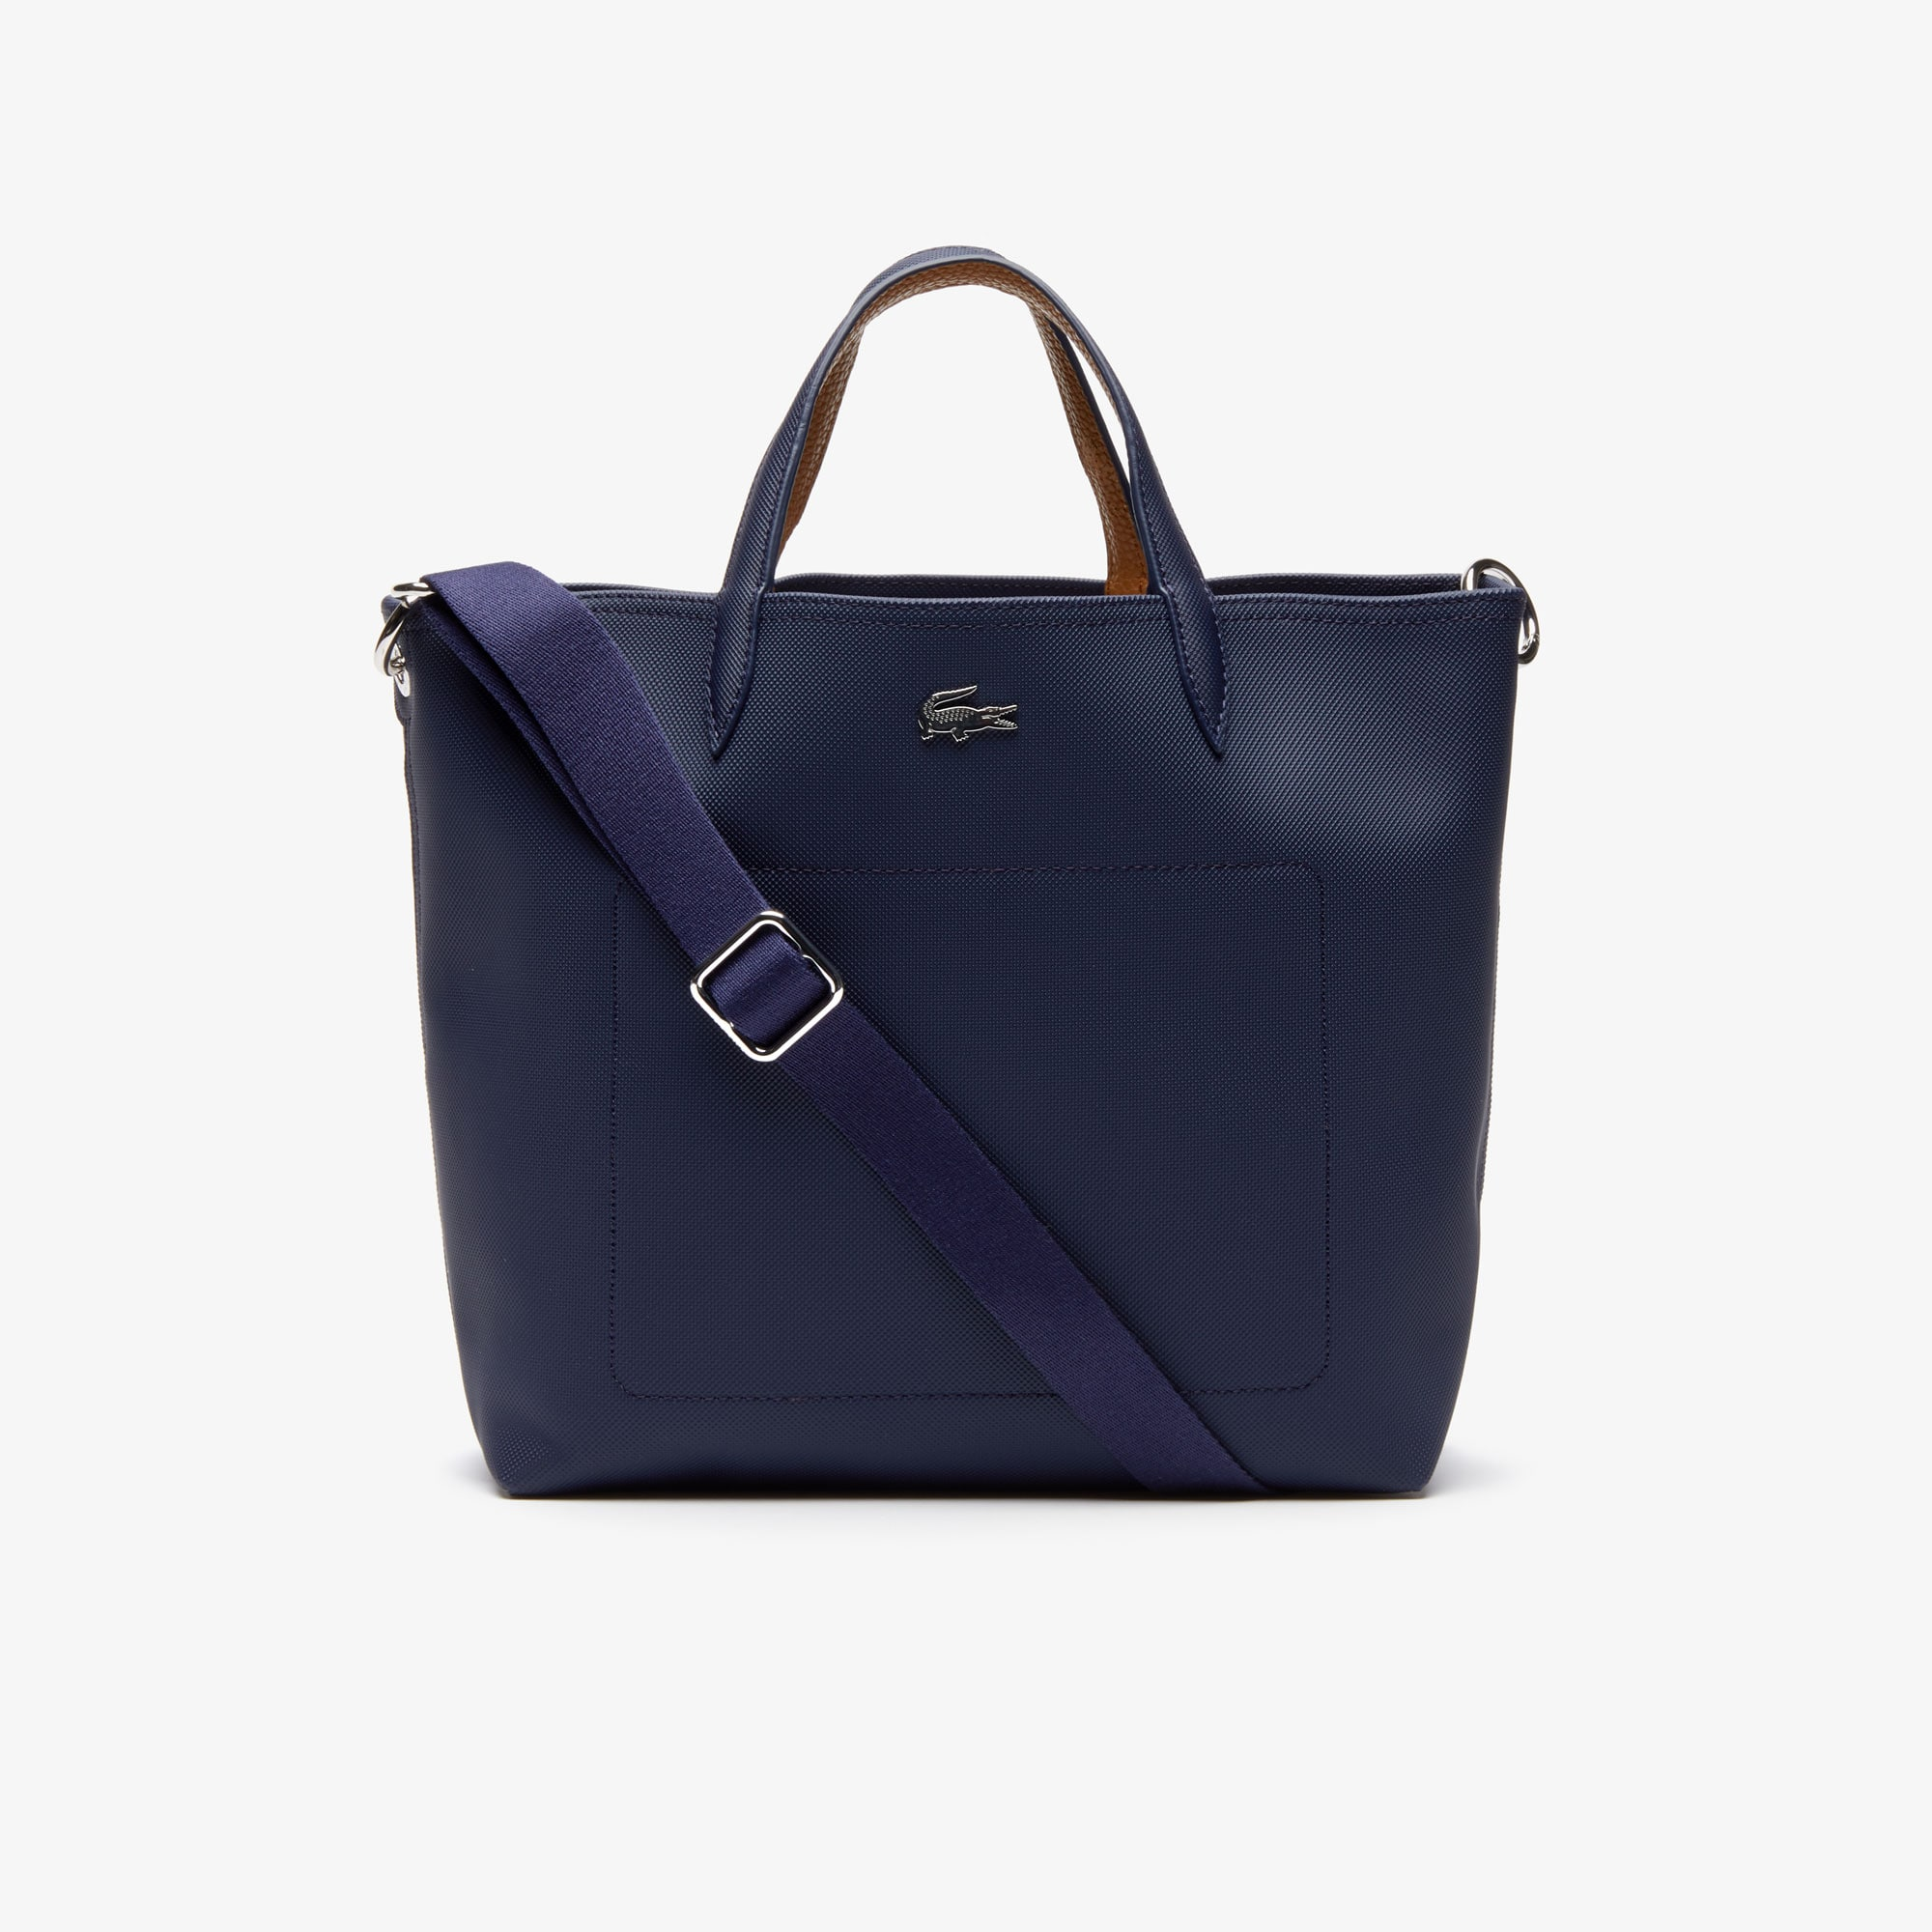 0ed59671ab Bags & Handbags Collection | Women's Leather Goods | LACOSTE